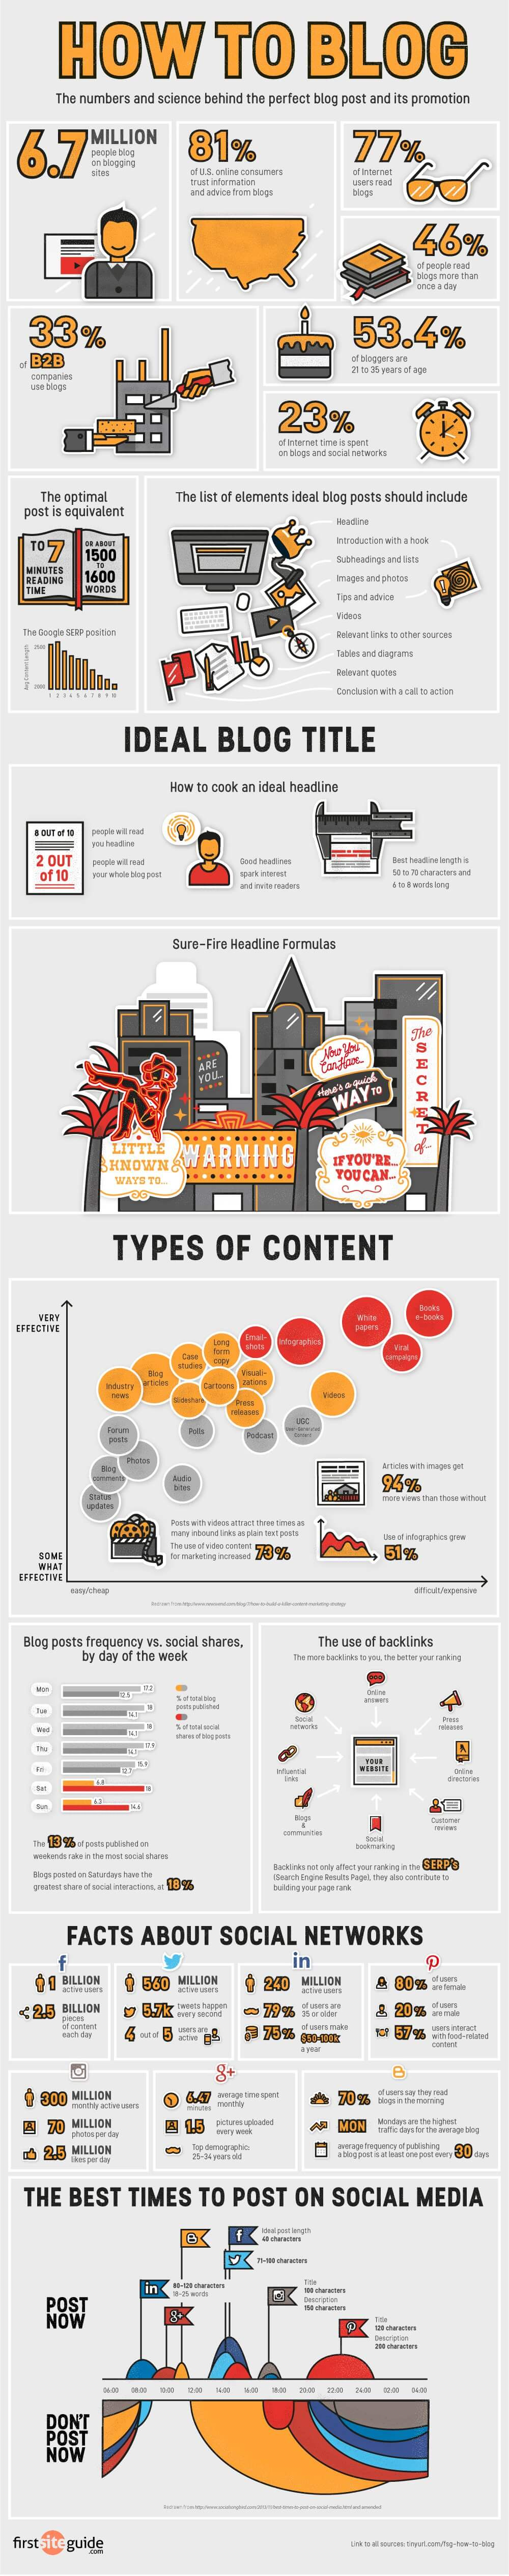 how to blog infographic